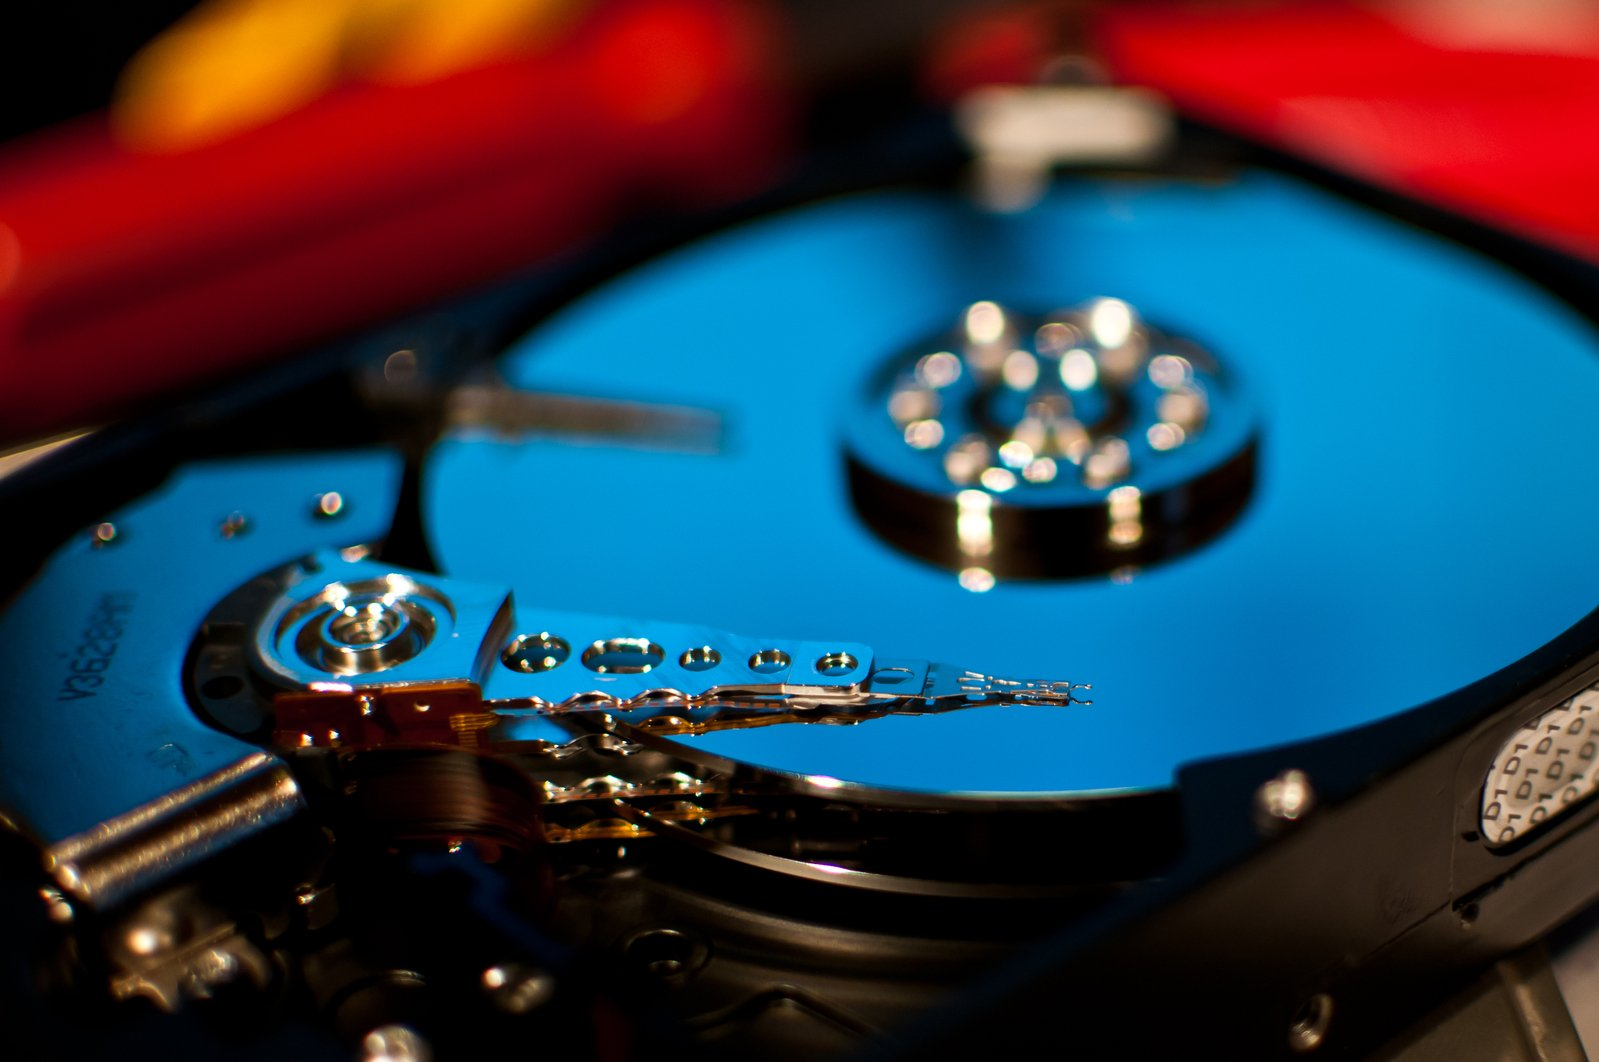 Disk Recovery Software and Hard Drive Recovery tool